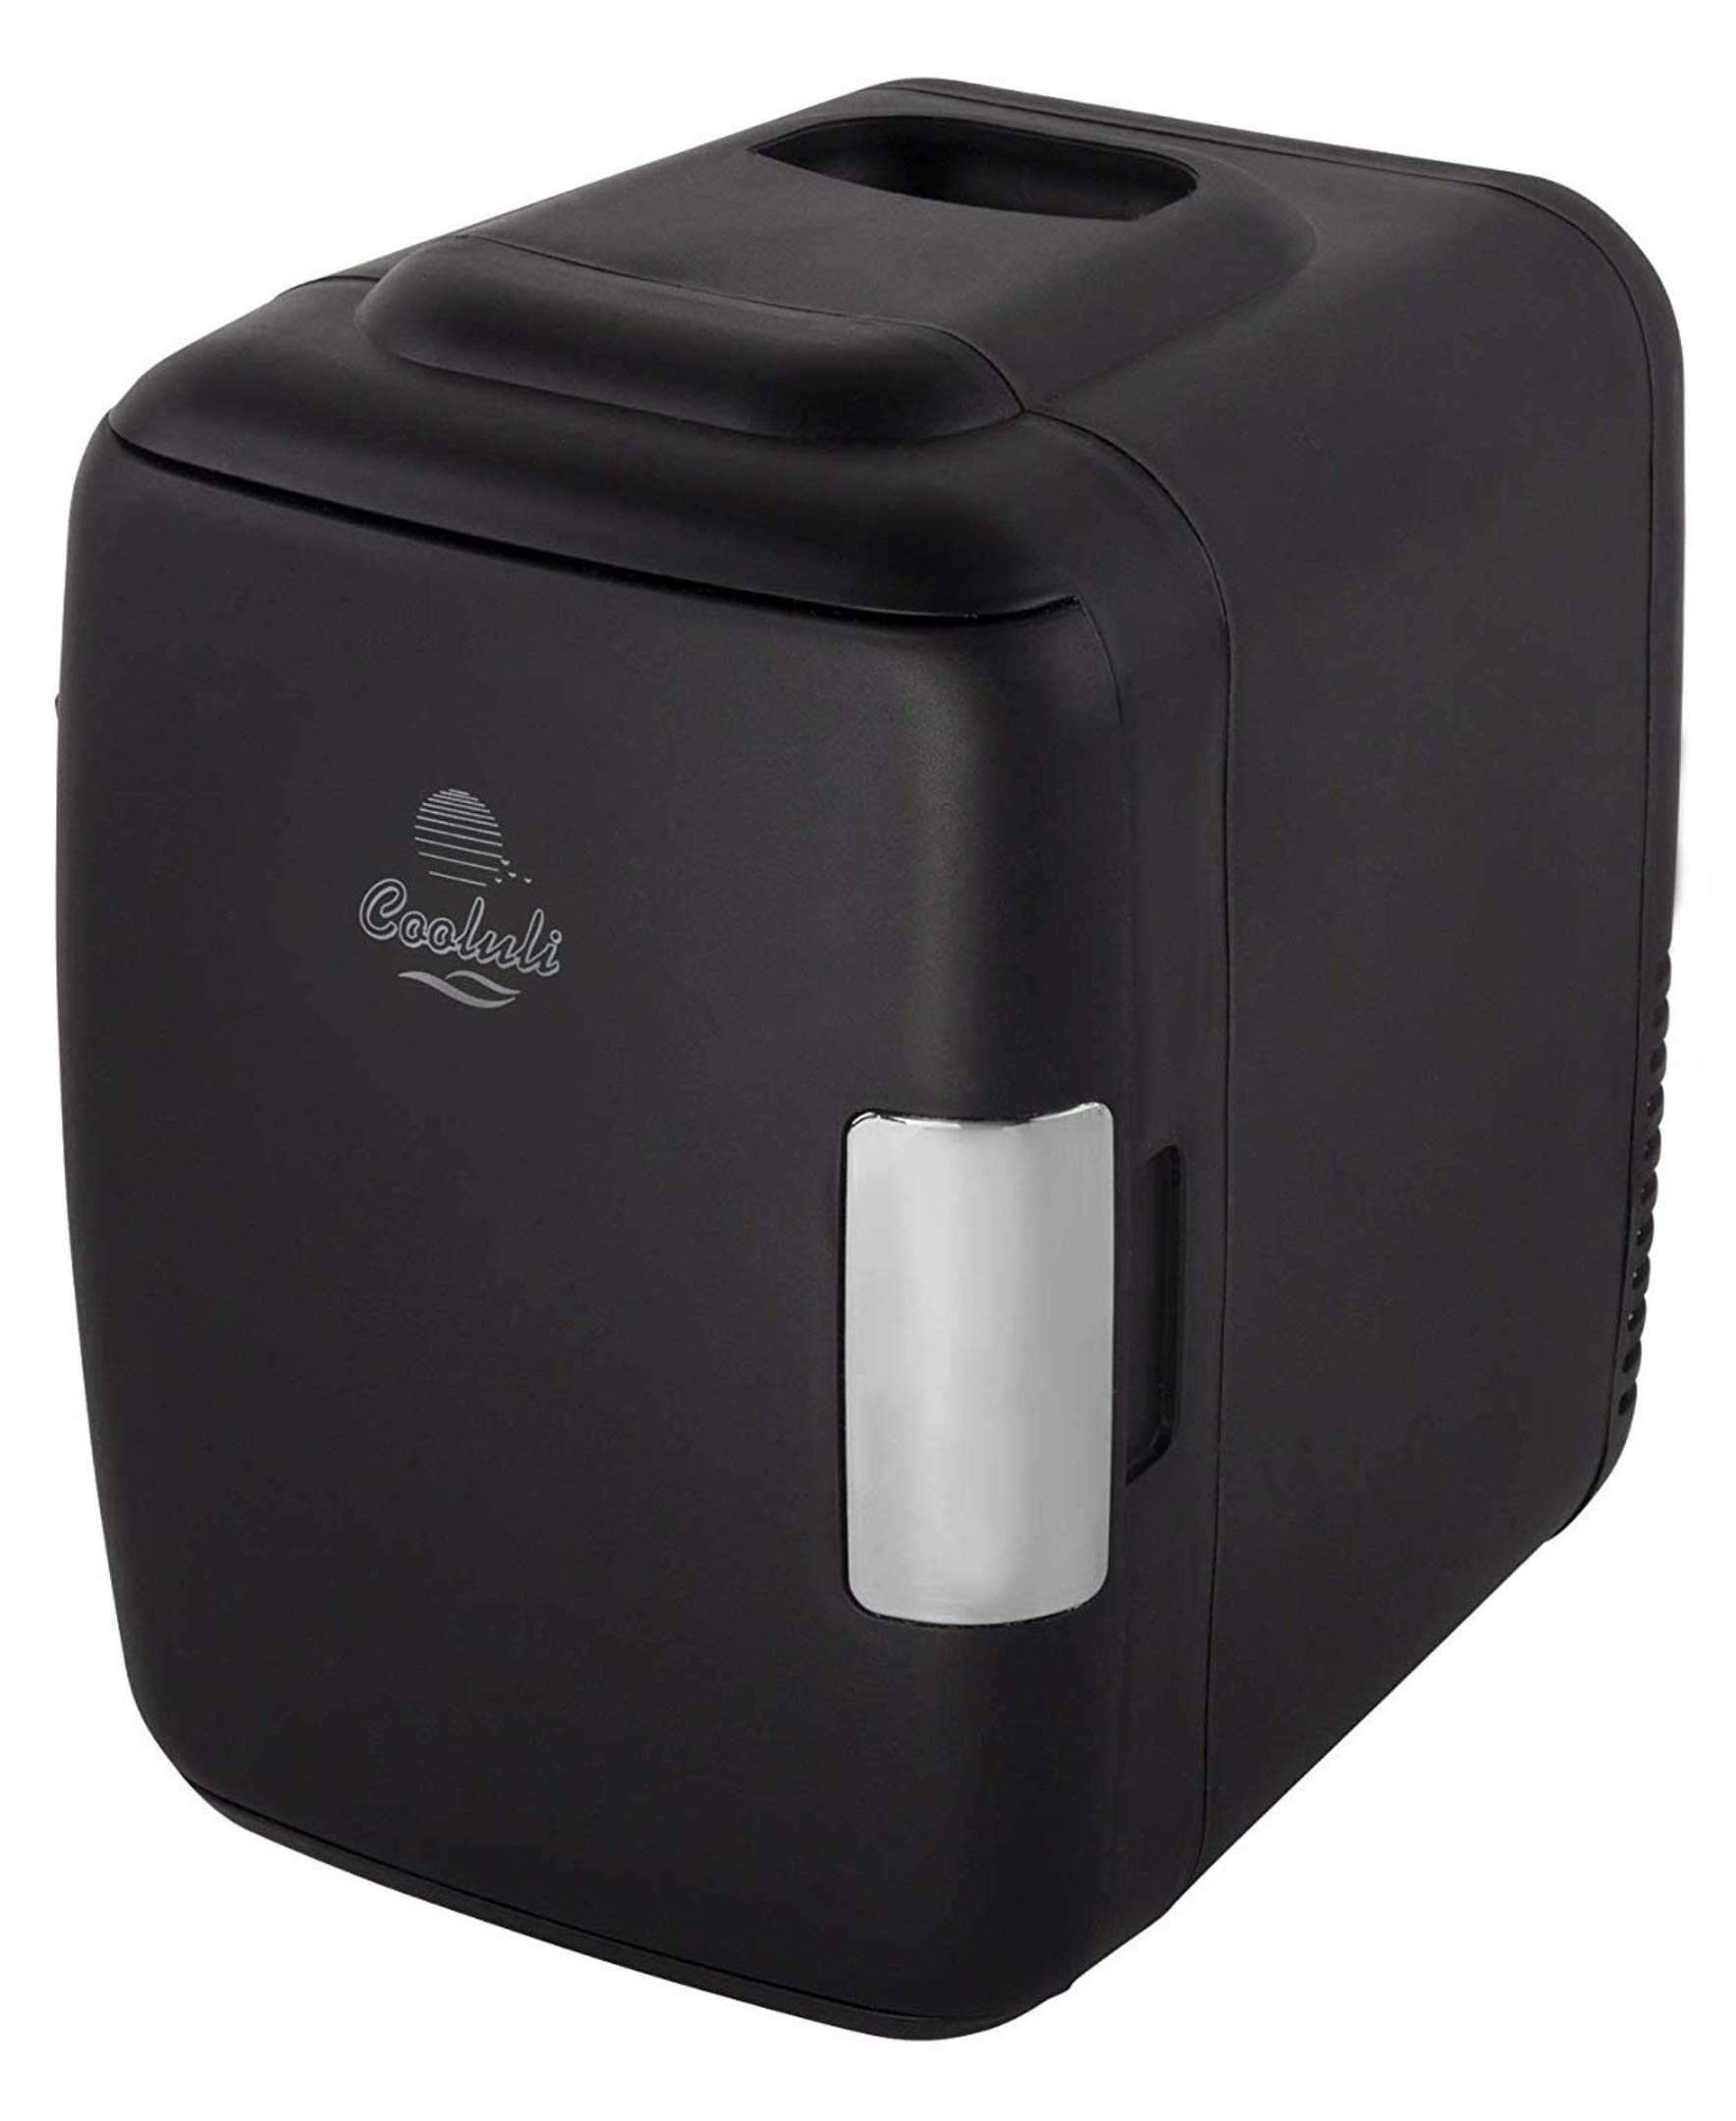 Beauty Shopping Cooluli Classic Black 4 Liter Compact Cooler Warmer Mini Fridge with AC/DC/USB Power